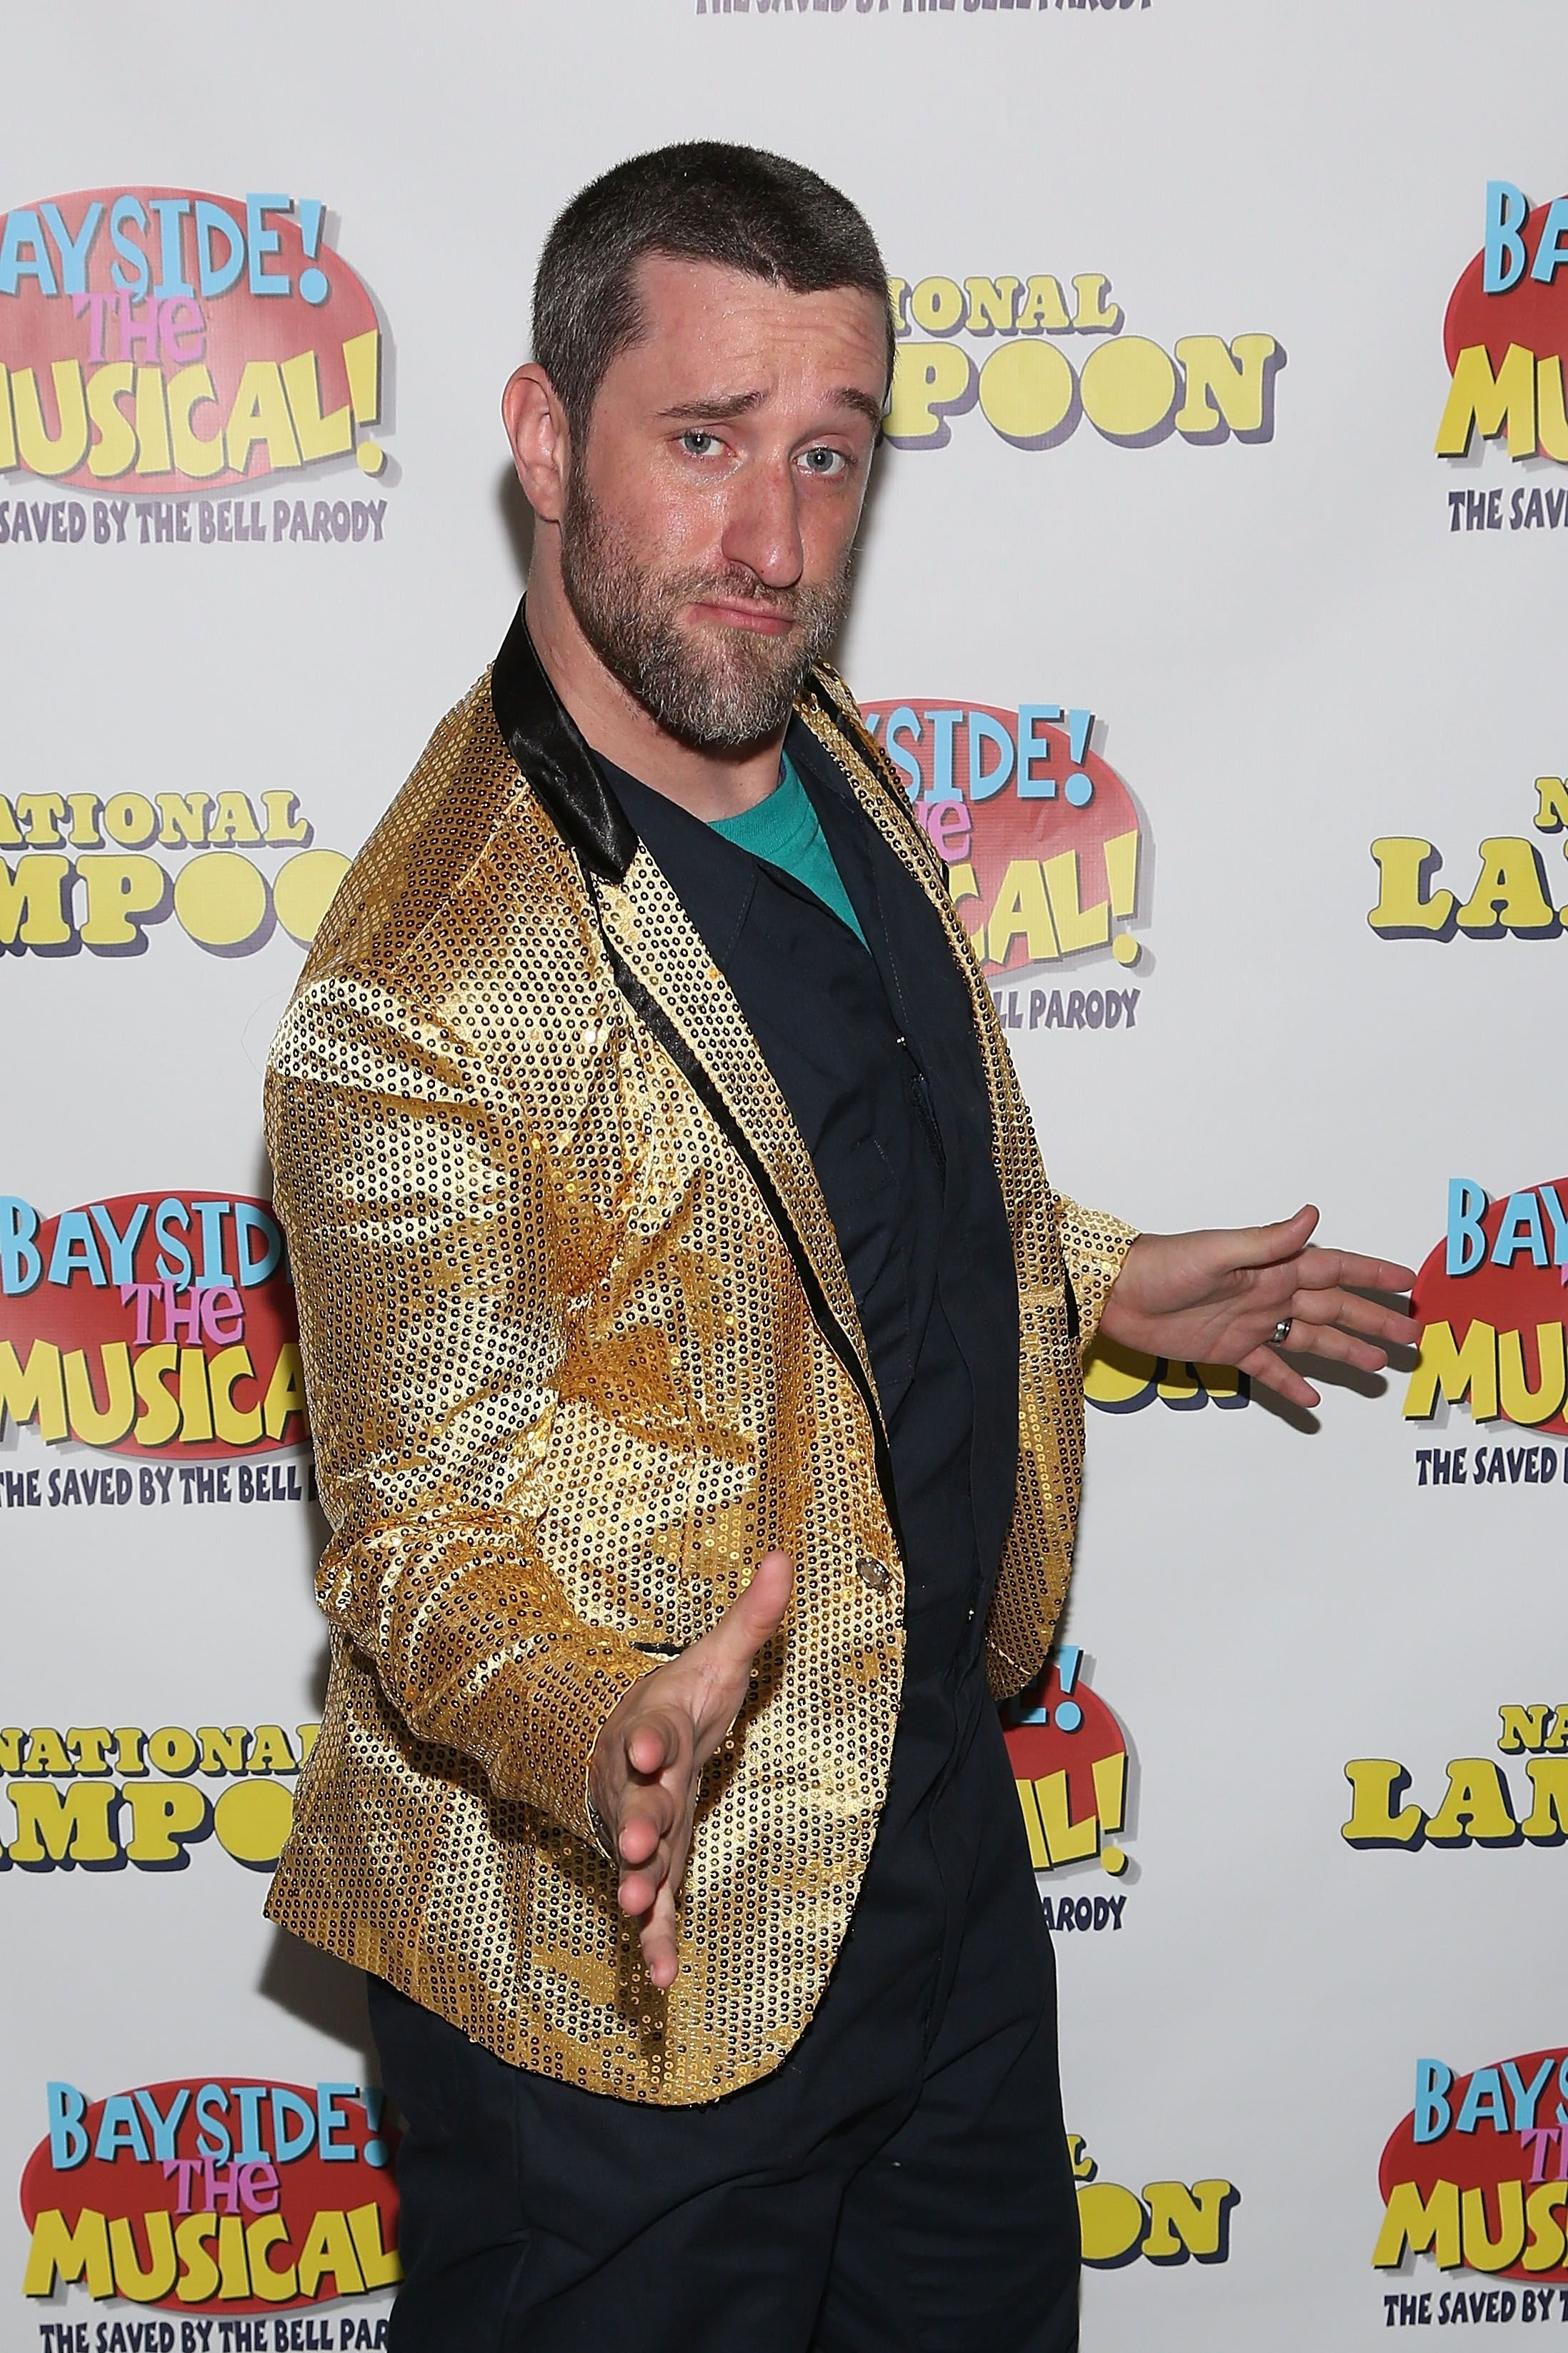 """Dustin Diamond at the opening performance of """"Bayside! The Musical!"""" at Theatre 80 St. Marks on September 11, 2014. 